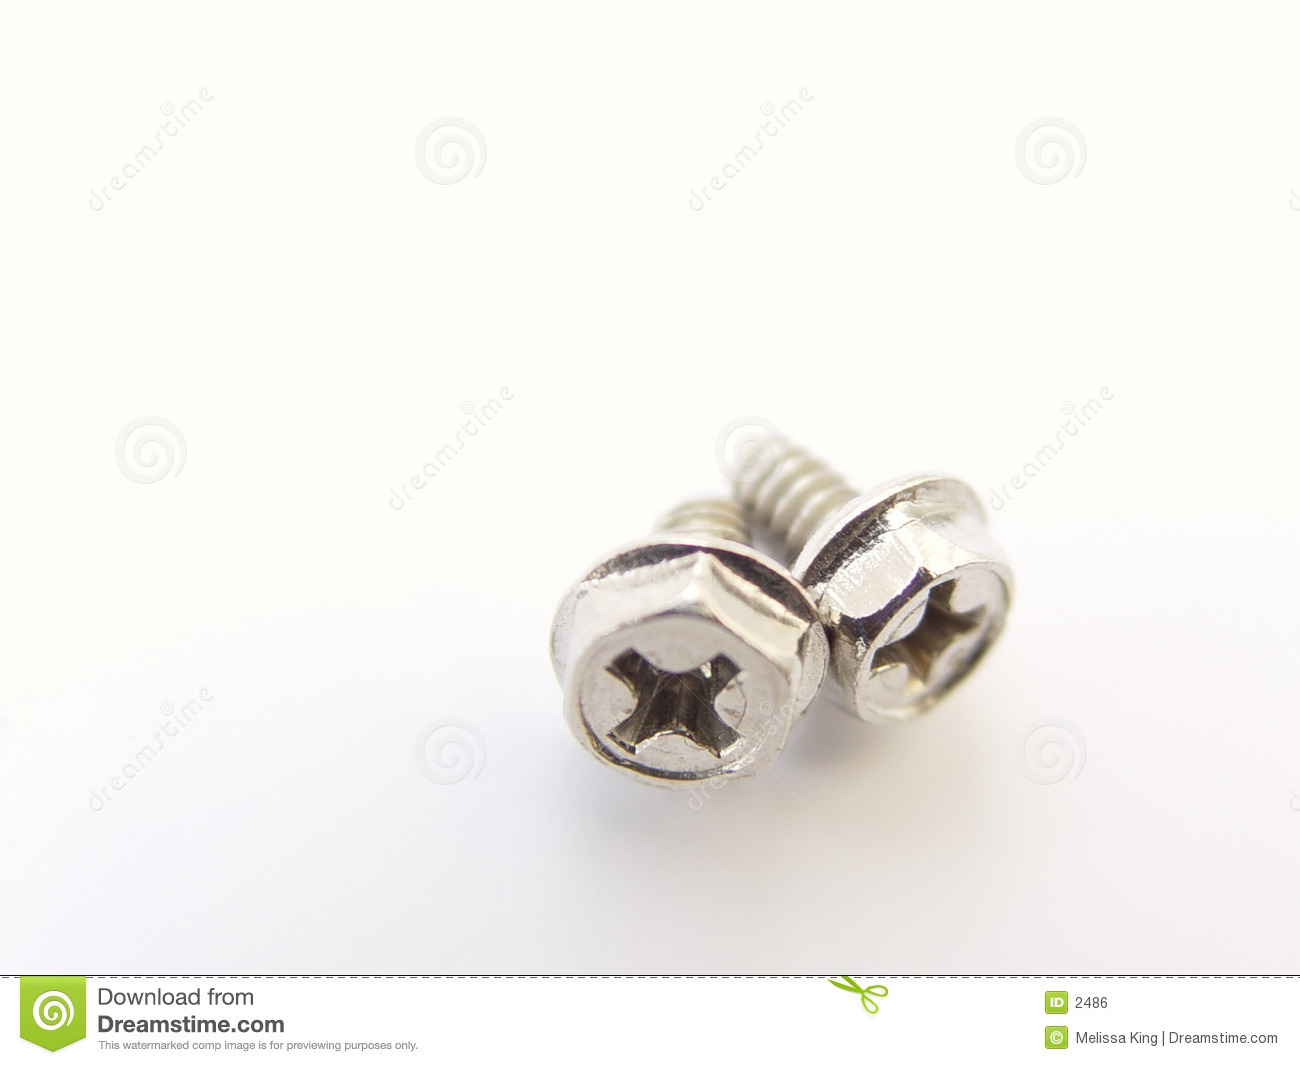 Two Small Computer Screws